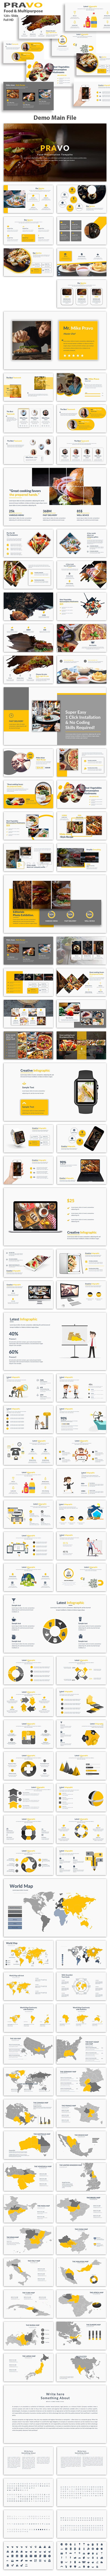 Pravo Food Multipurpose Keynote Template - Creative Keynote ...